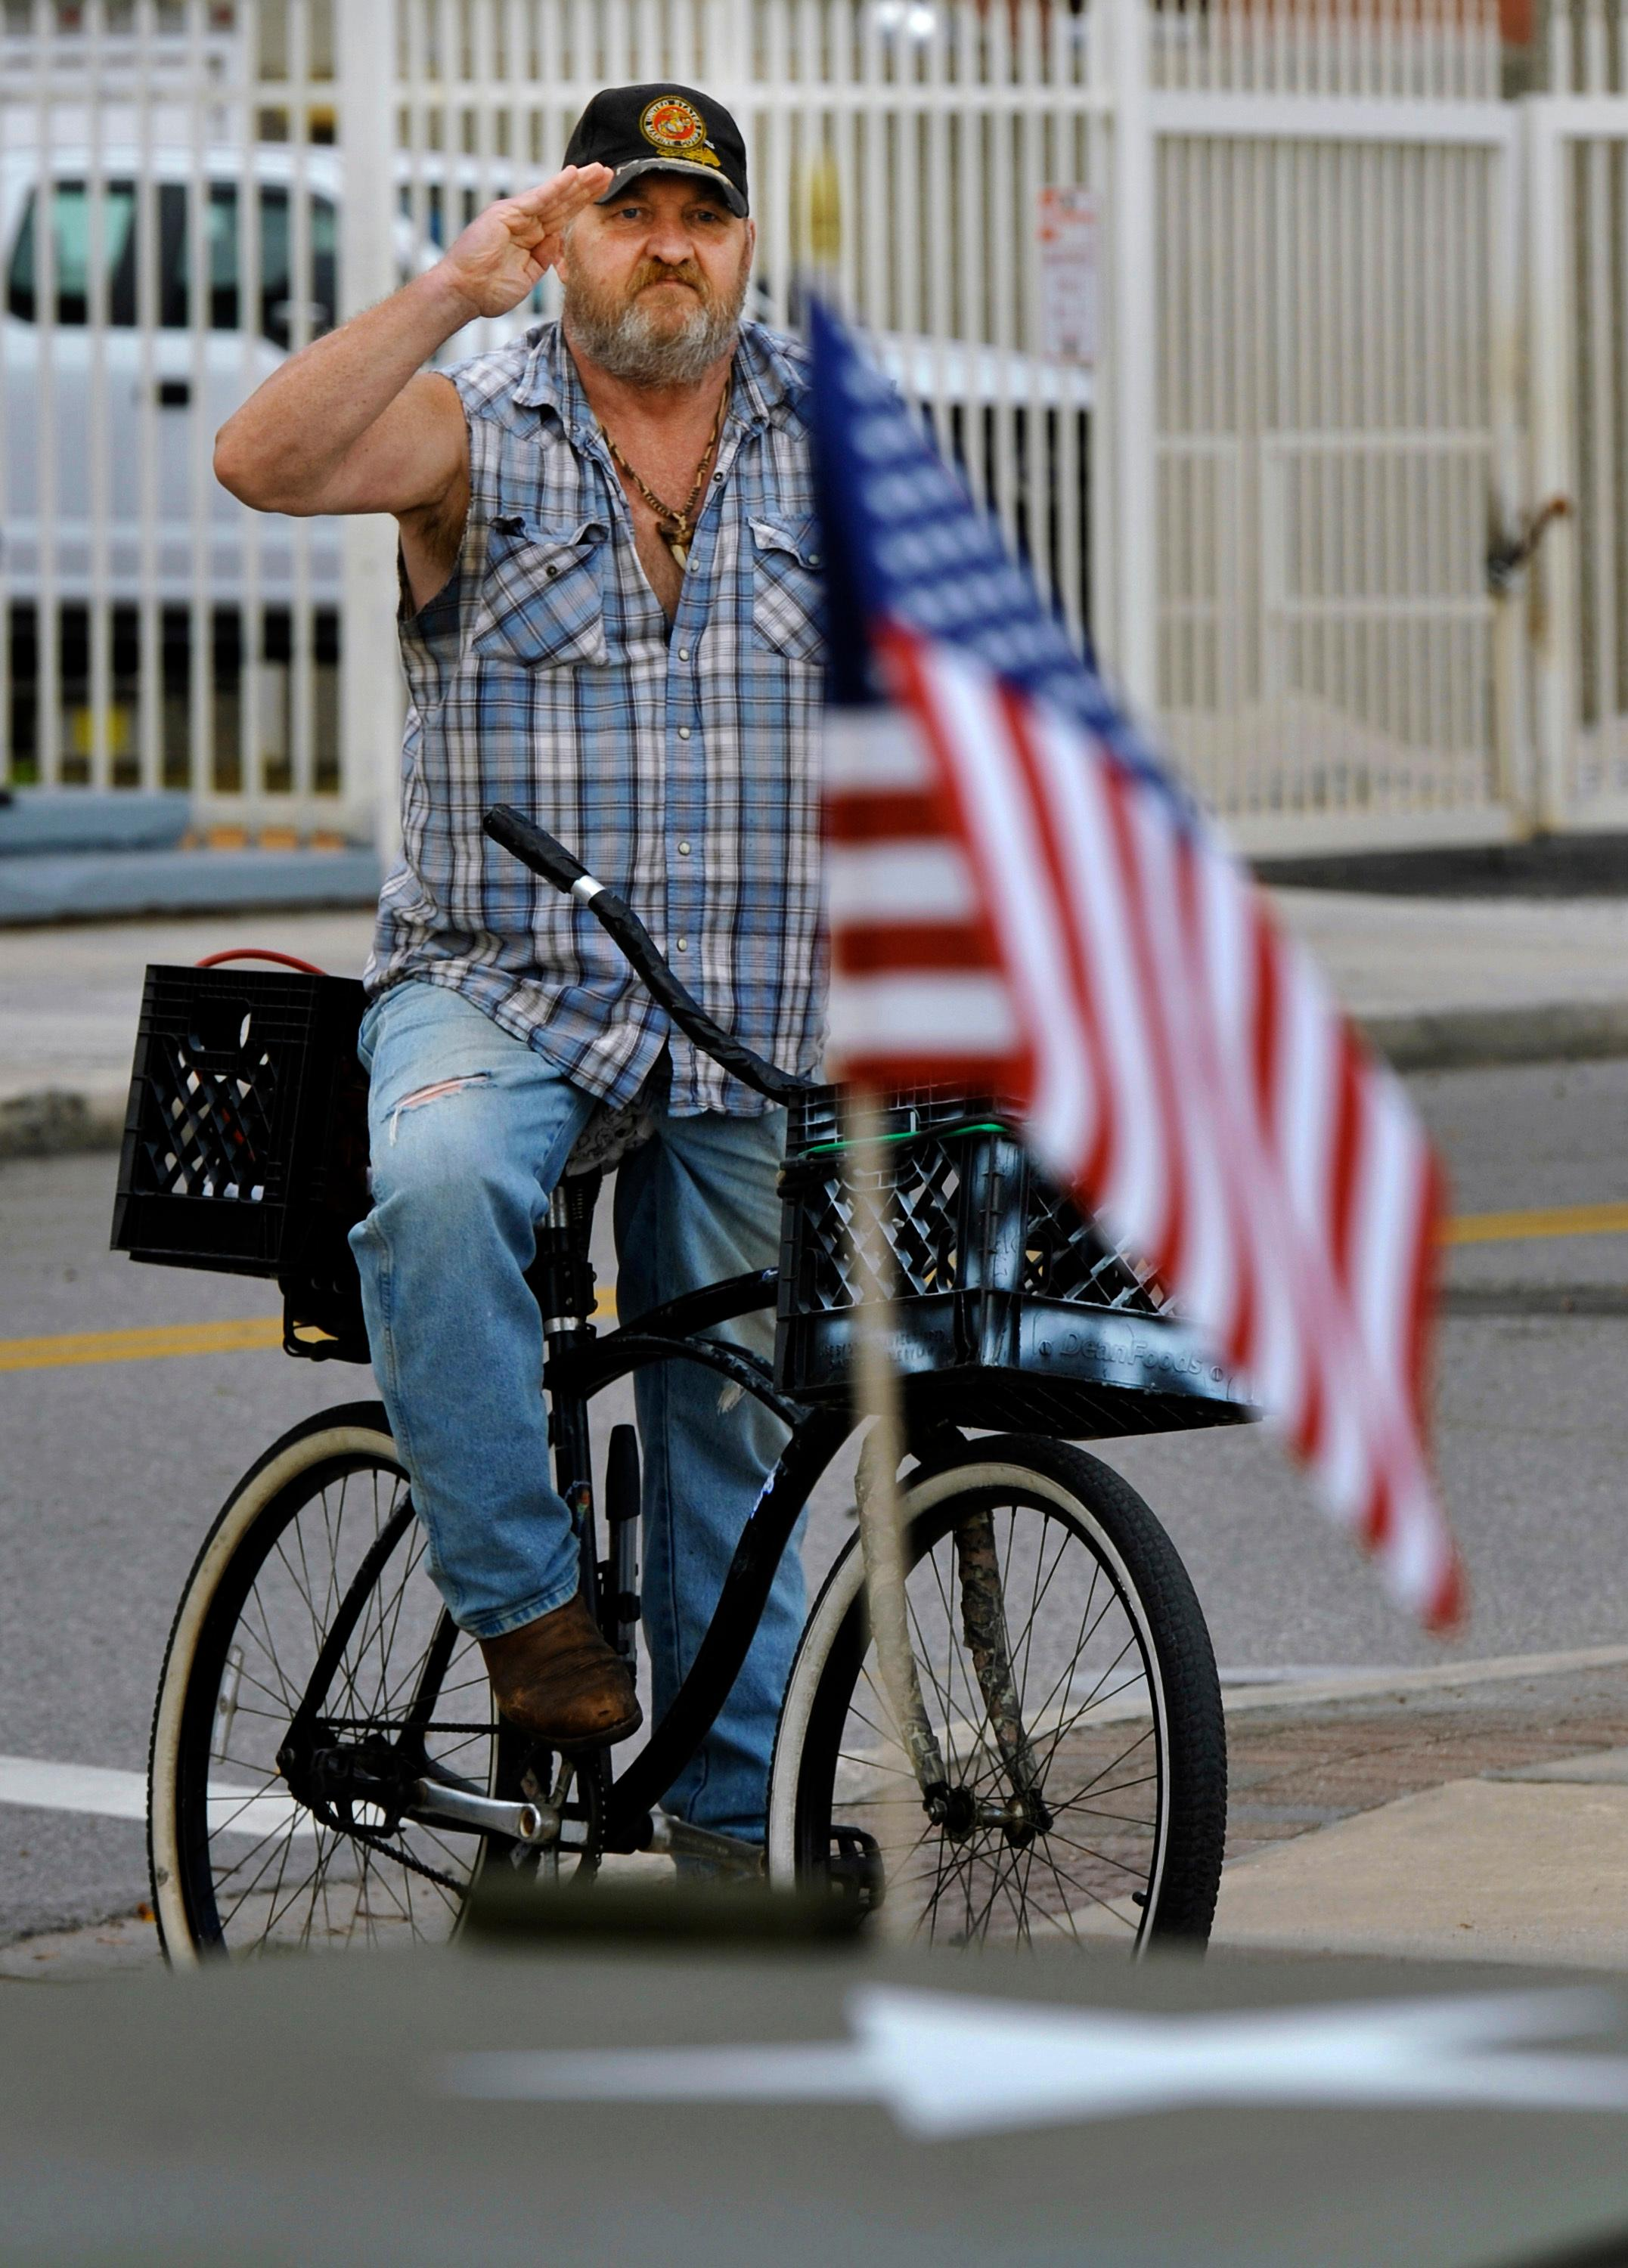 Wearing a U.S. Marine Corps ball cap Jacksonville resident Bill Smith salutes a vintage military jeep decorated with American Flags as he watches the Veterans Day parade, Saturday Nov. 11, 2017, in Jacksonville, Fla. Smith, who did not serve in the military himself, said he comes out and salutes for his brother who died serving in Vietnam with the Marine Corps. (Bob Self/The Florida Times-Union via AP)